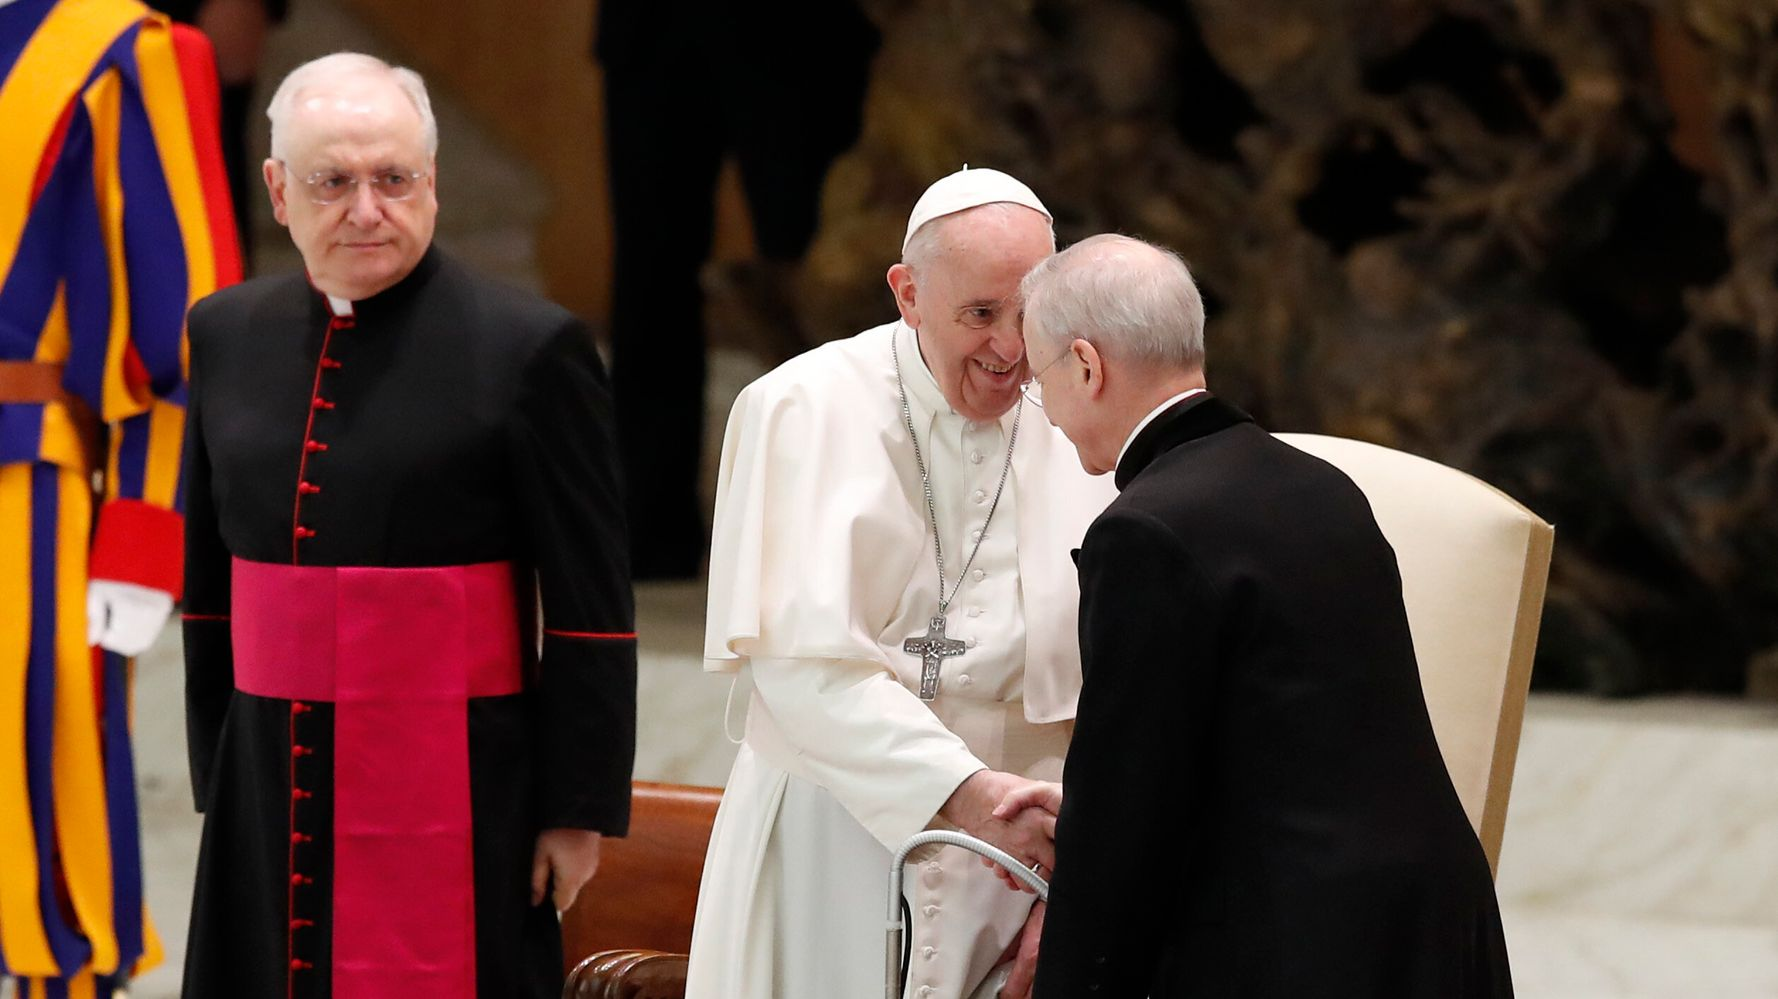 Pope Foregoes Mask, Blames 'Lady Called COVID' For Social Distancing At Audience